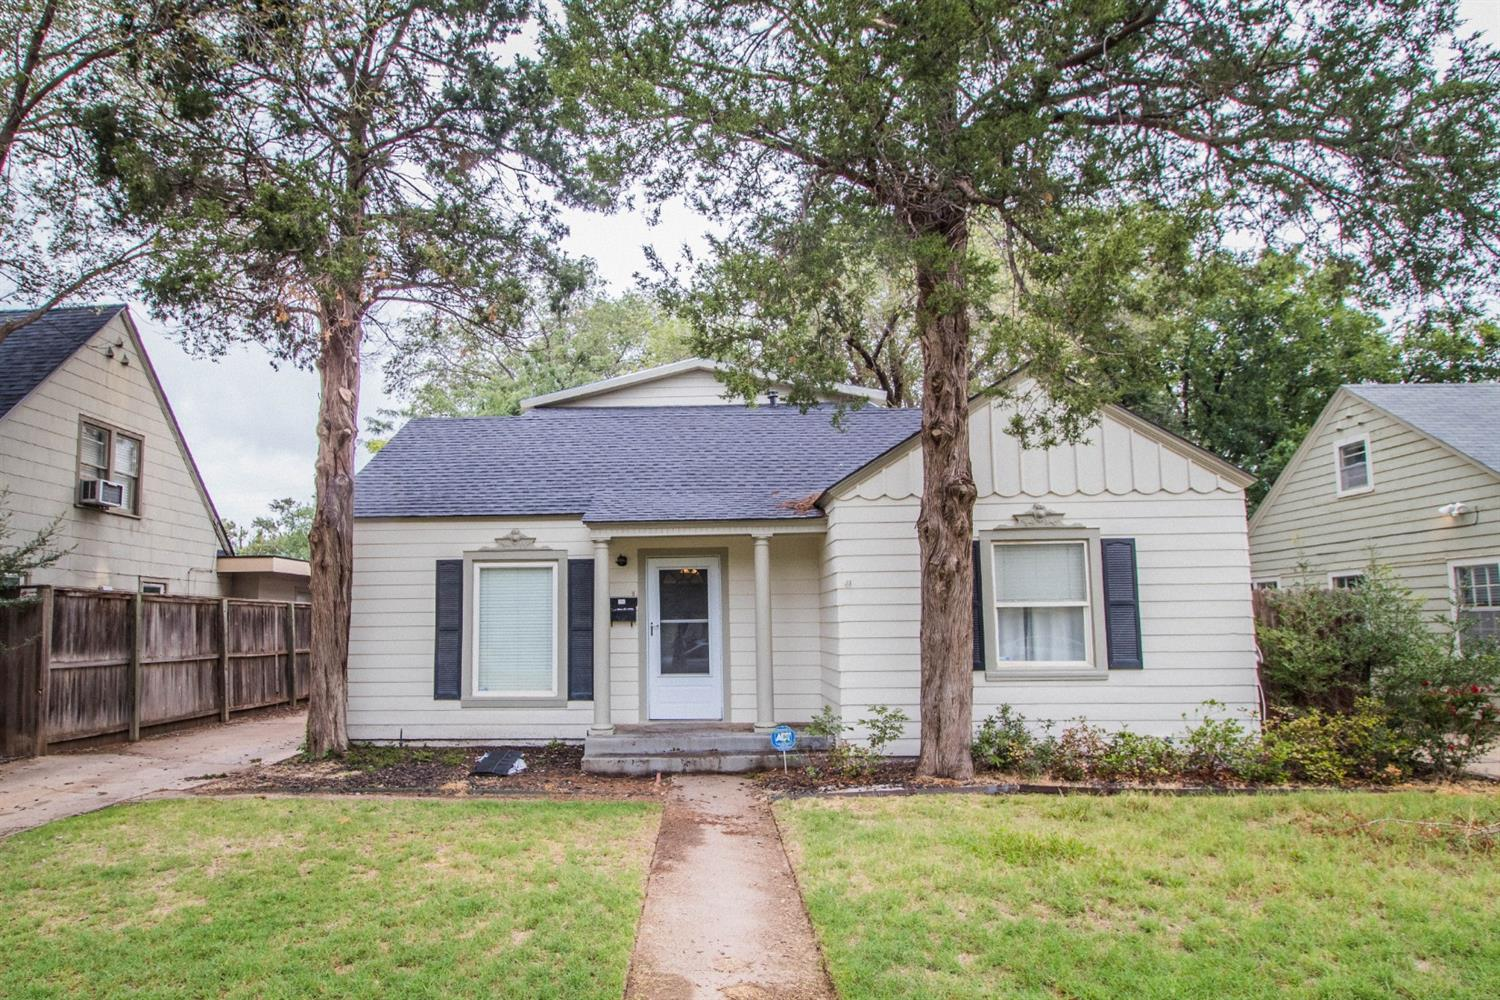 2616 25th Street, Lubbock in Lubbock County, TX 79410 Home for Sale